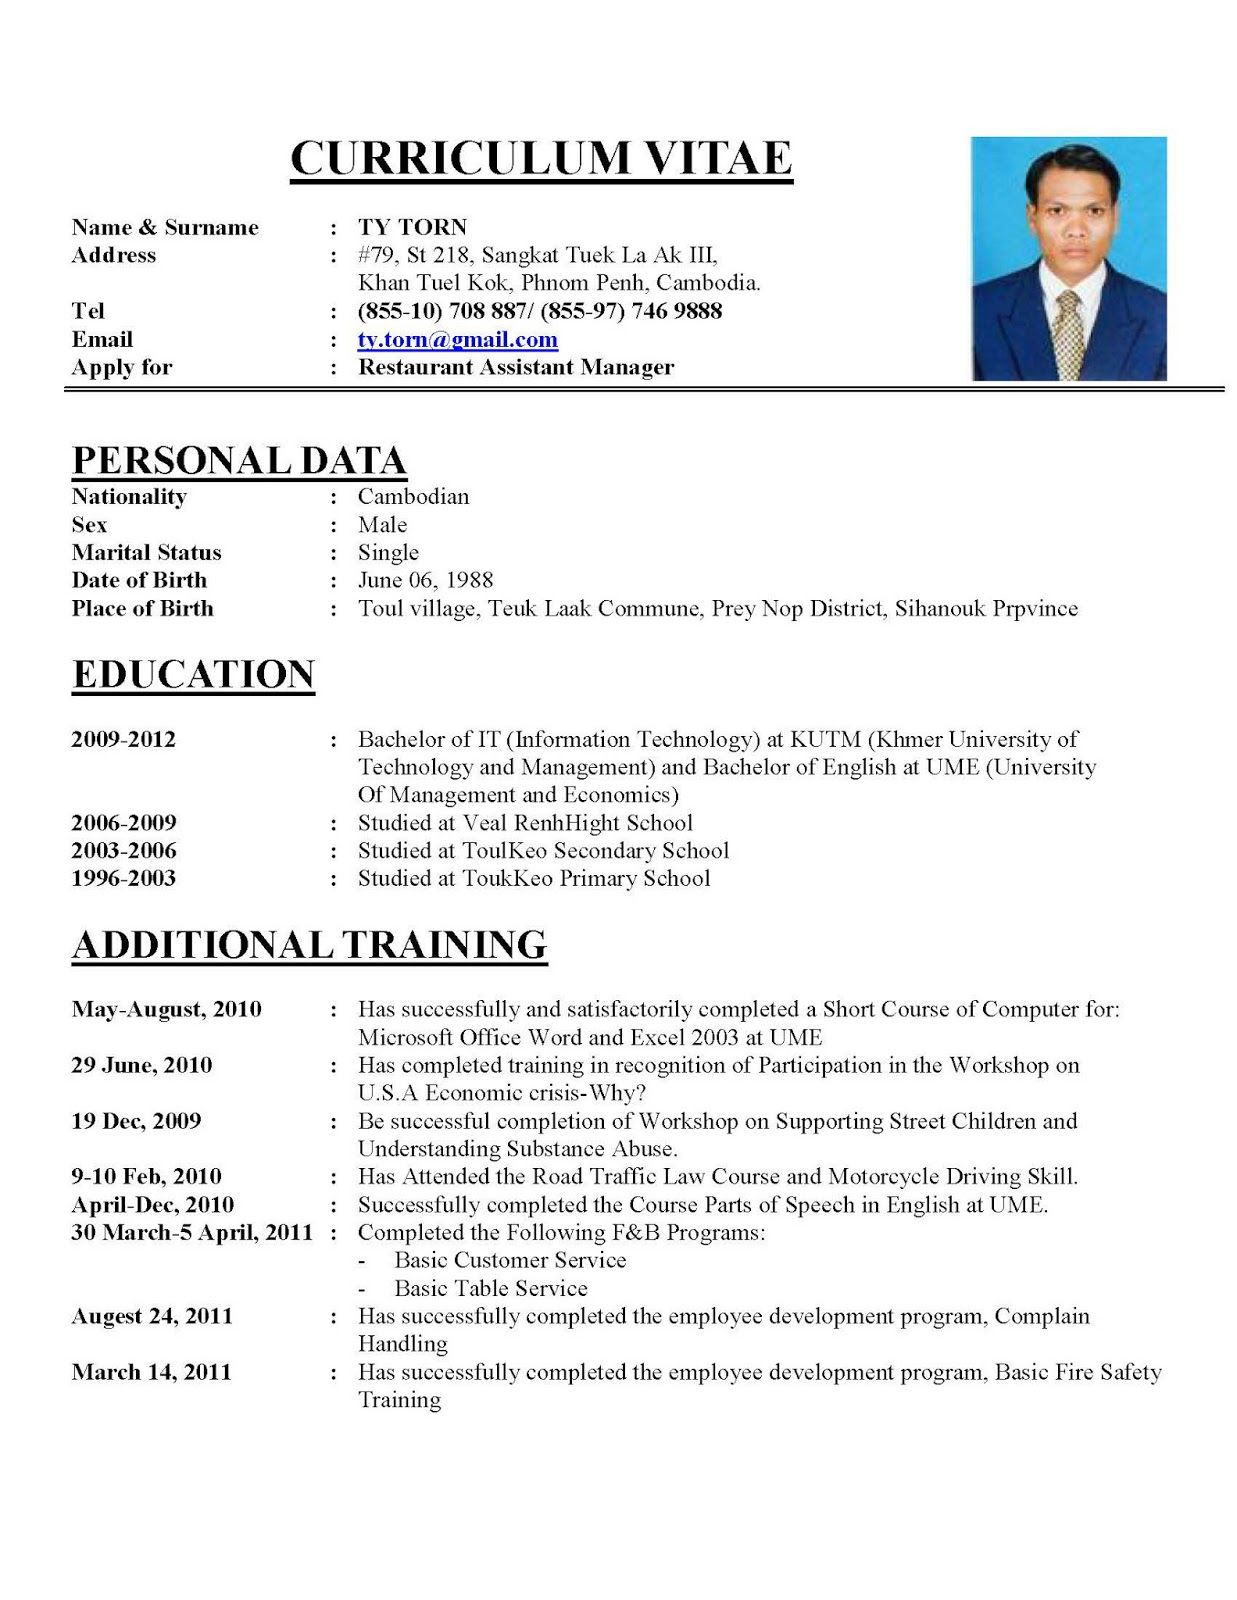 Good Resume Examples For Jobs Curriculum Vitae Format Fotolip Rich Image And Wallpaper Sample